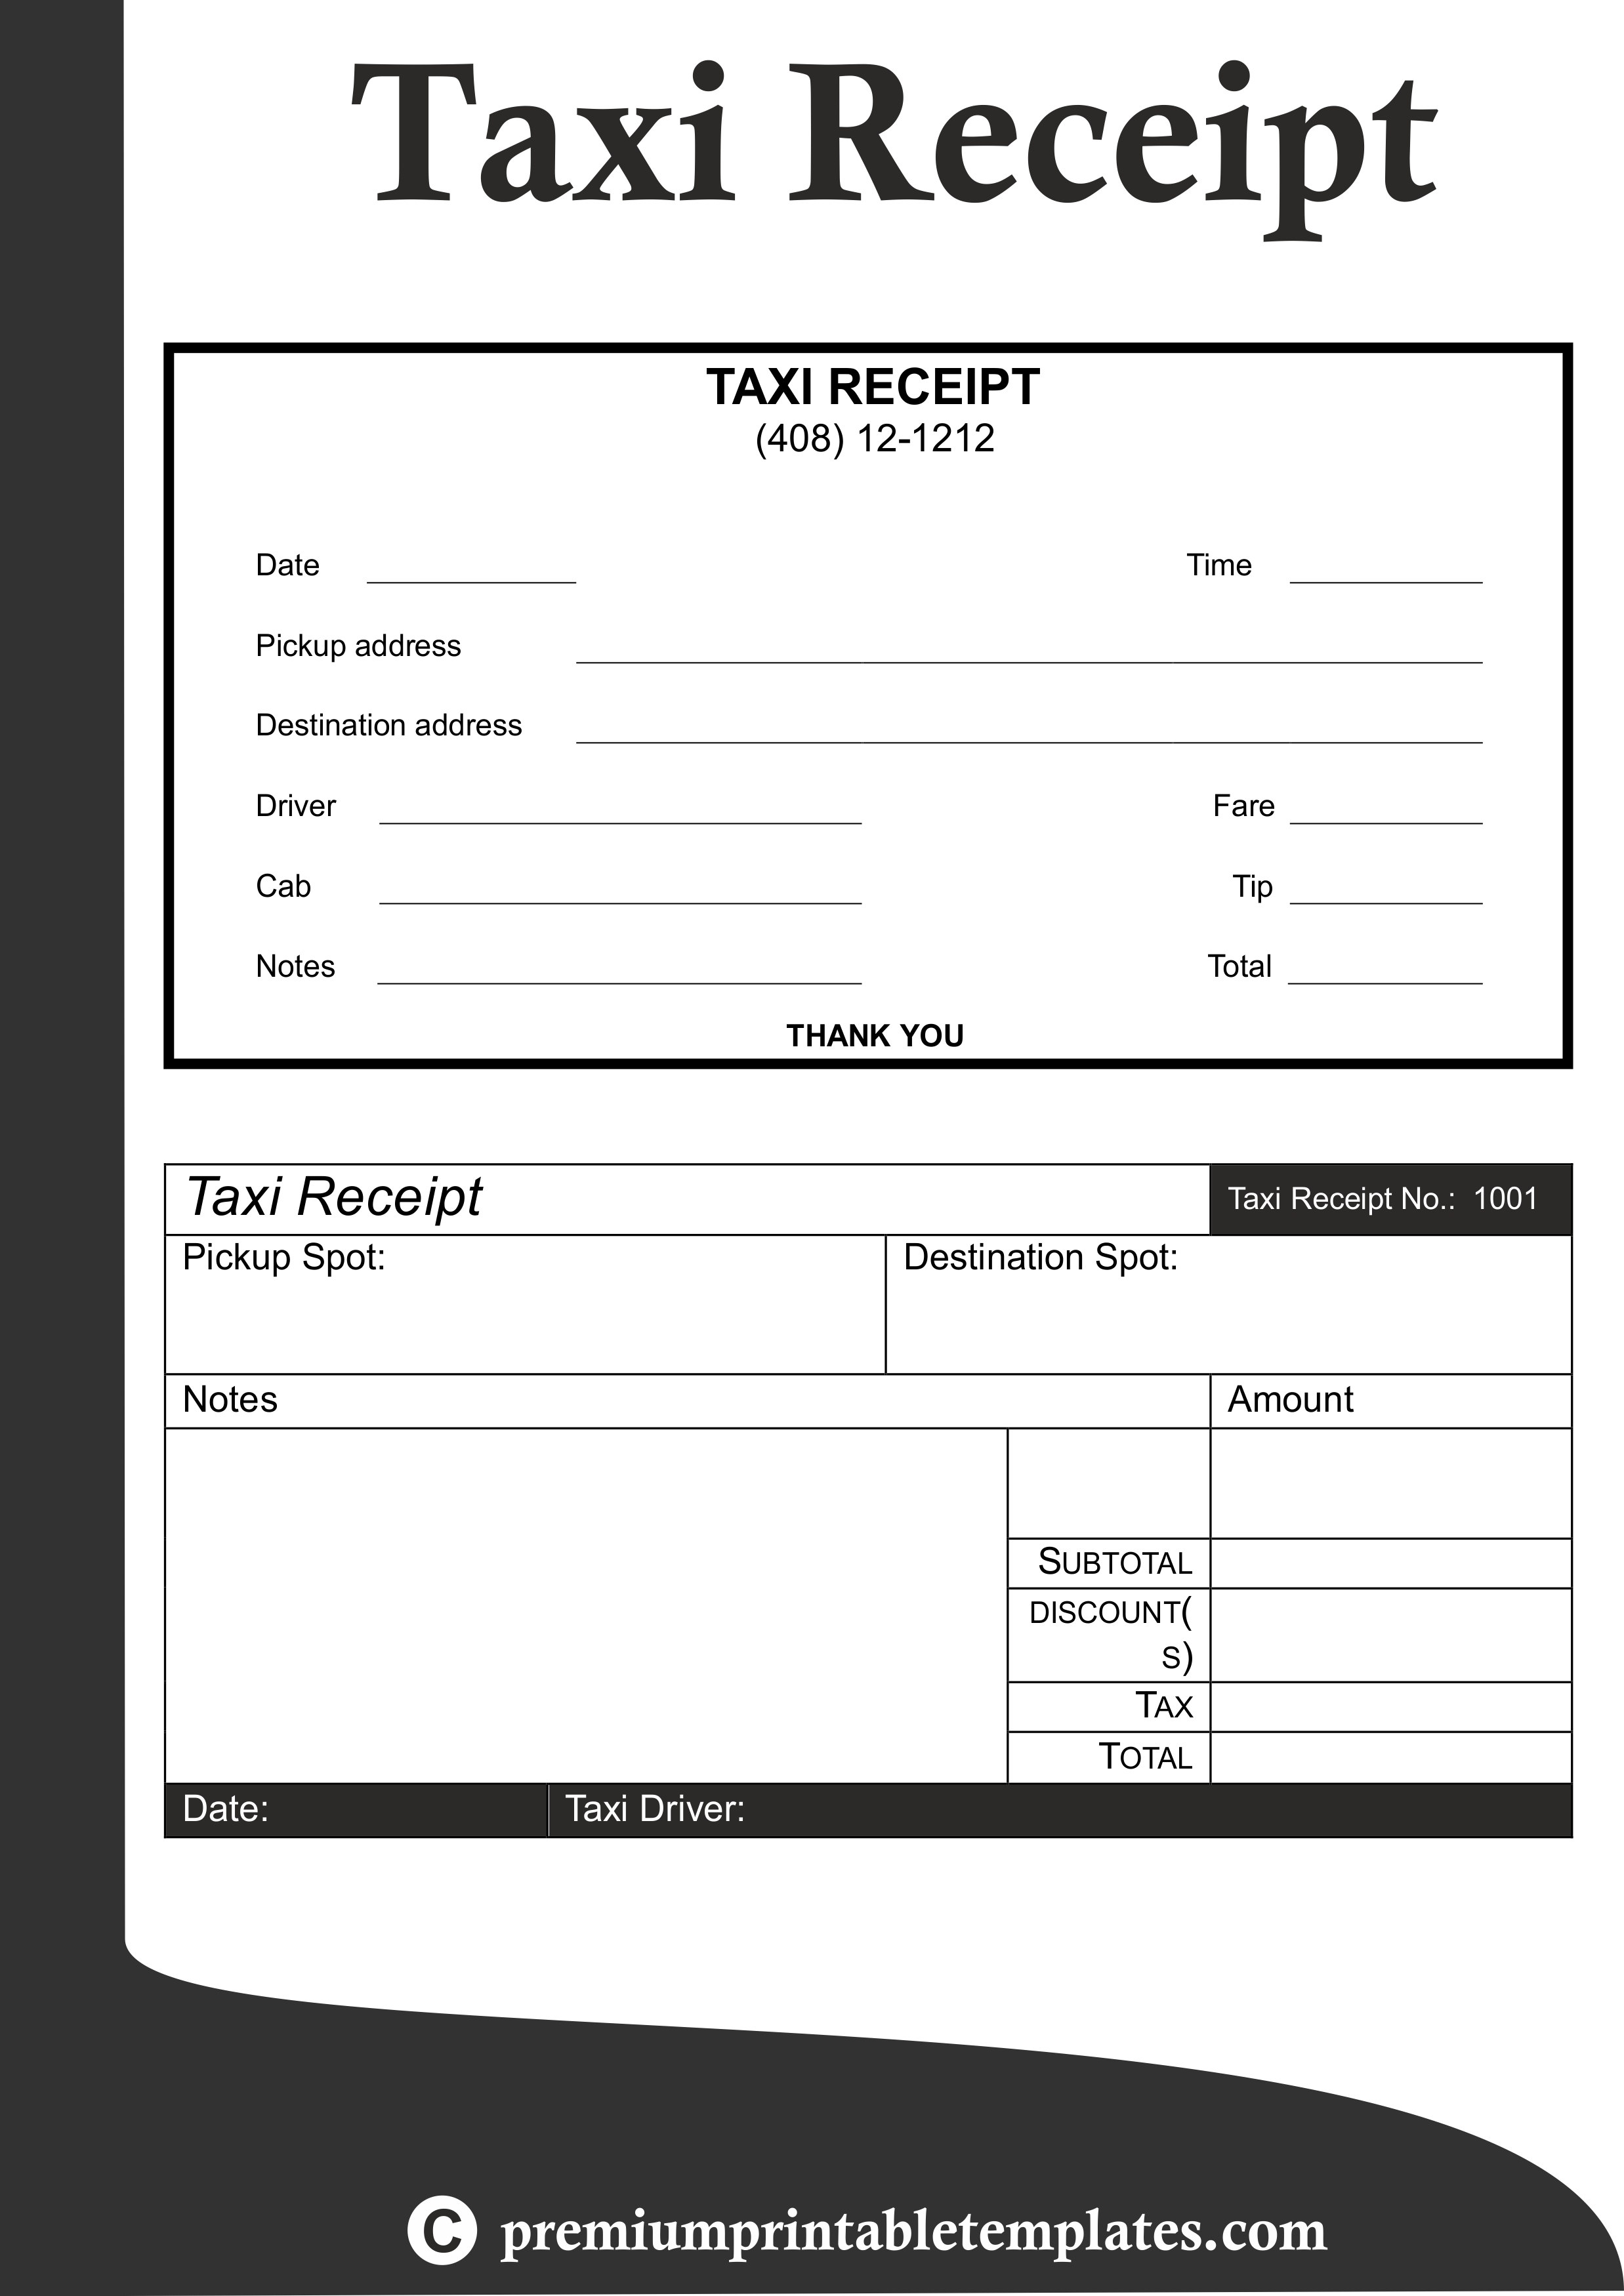 taxi receipt templates receipt template templates taxi rental for taxi invoice